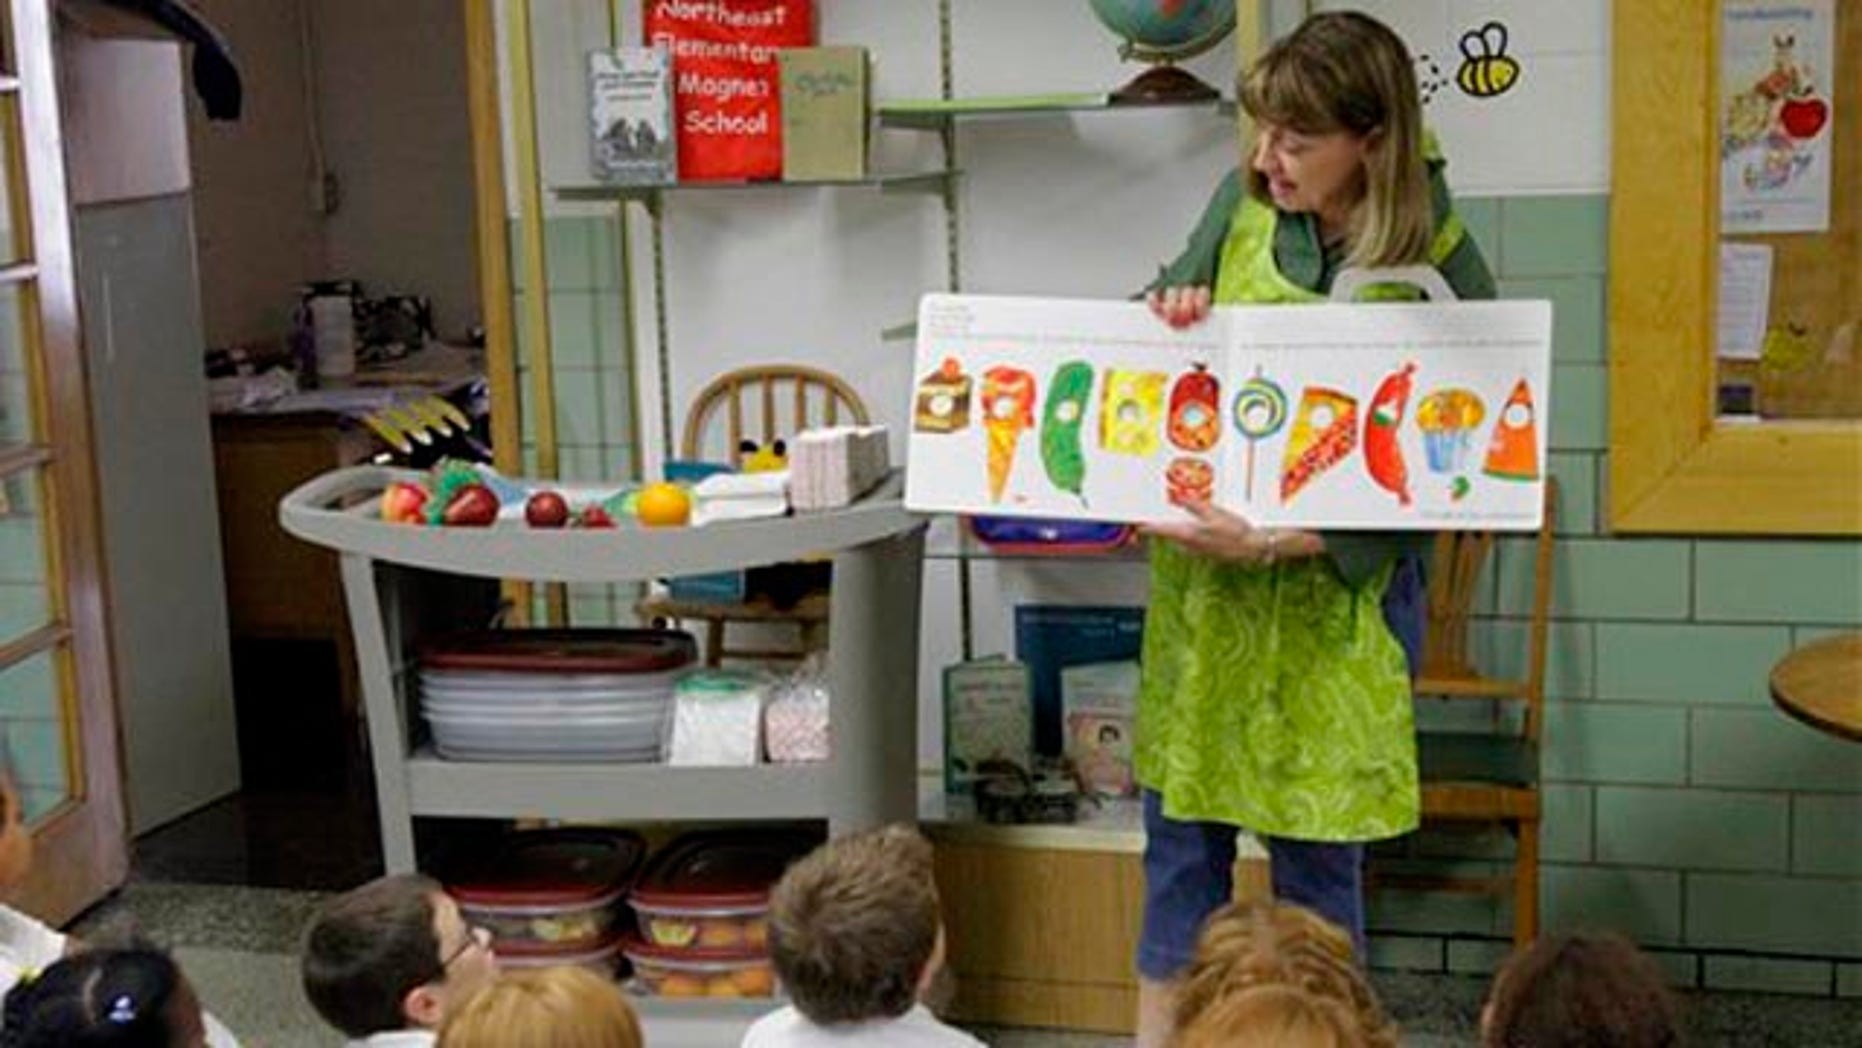 Sept. 20,: Nancy Henderson, home economic coordinator for the fresh fruit and vegetables program, works with the students at Northeast Elementary Magnet, in Danville, Ill.